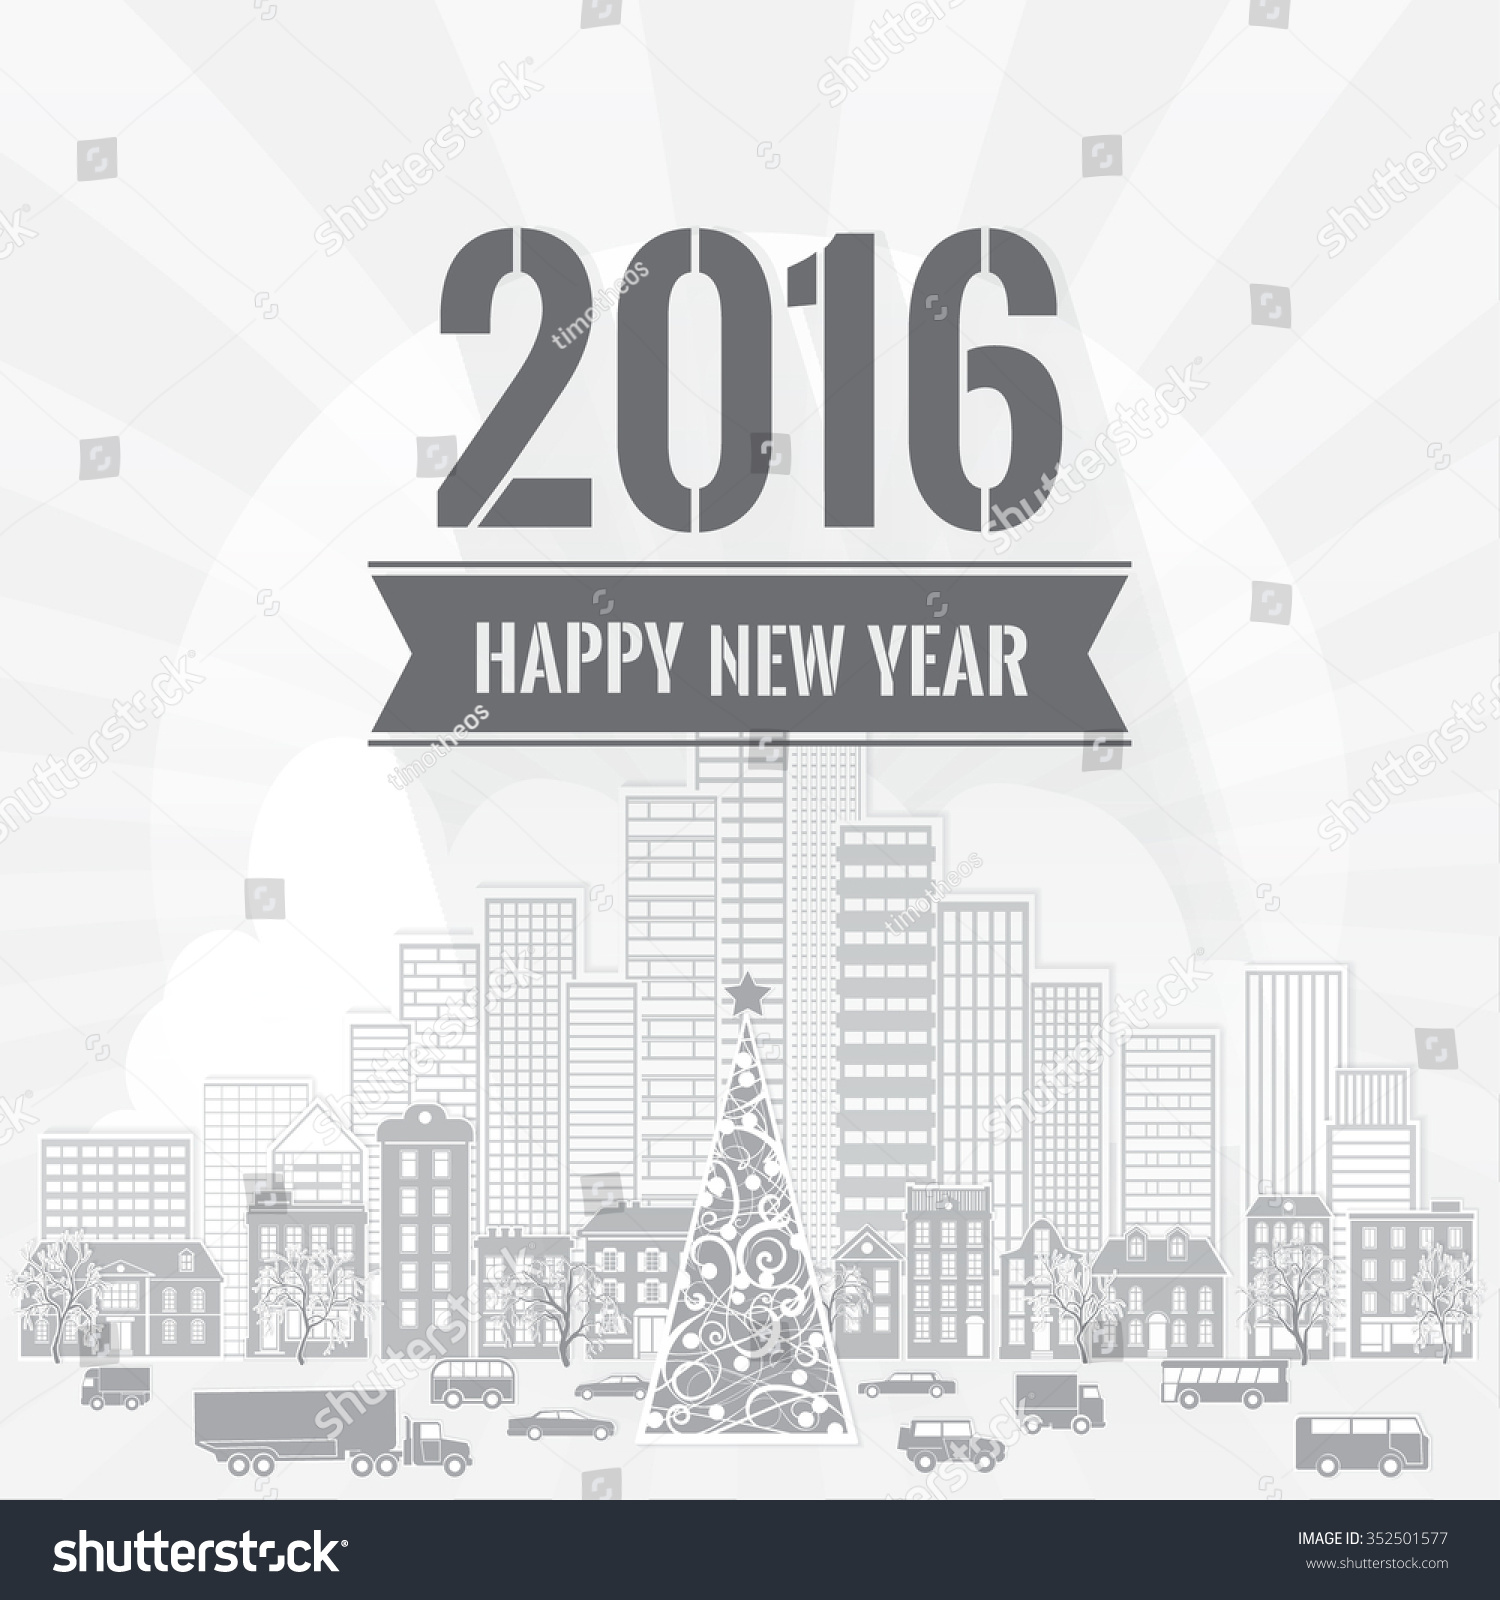 Happy new year greetings card dark stock vector royalty free happy new year greetings card with dark gray letters on light gray background with skyscrapers old m4hsunfo